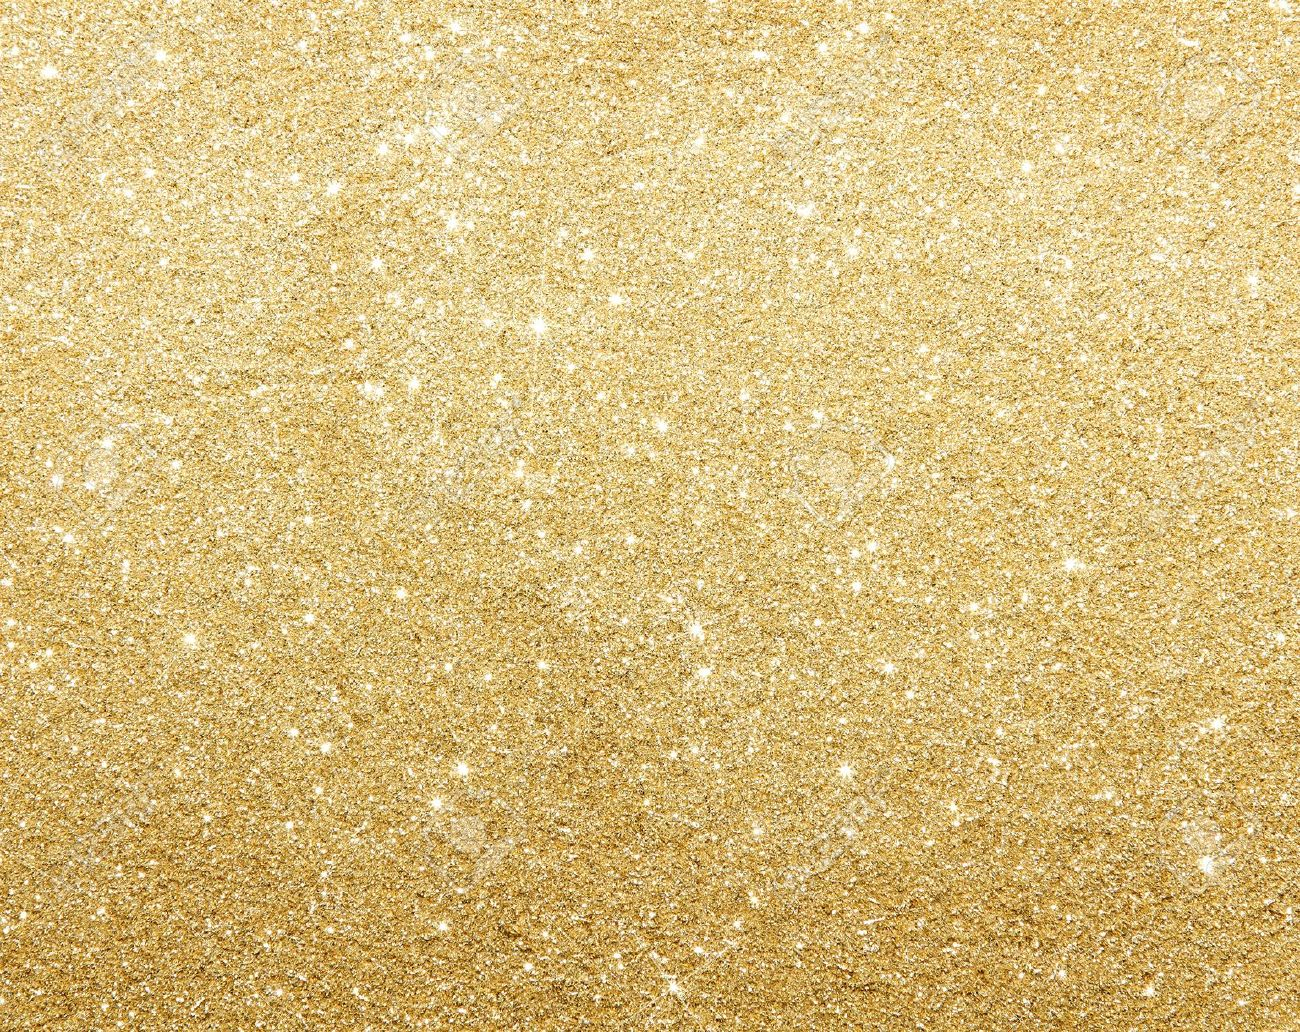 Wonderful Glamour Gold Sparkling Background Stock Photo   9970428